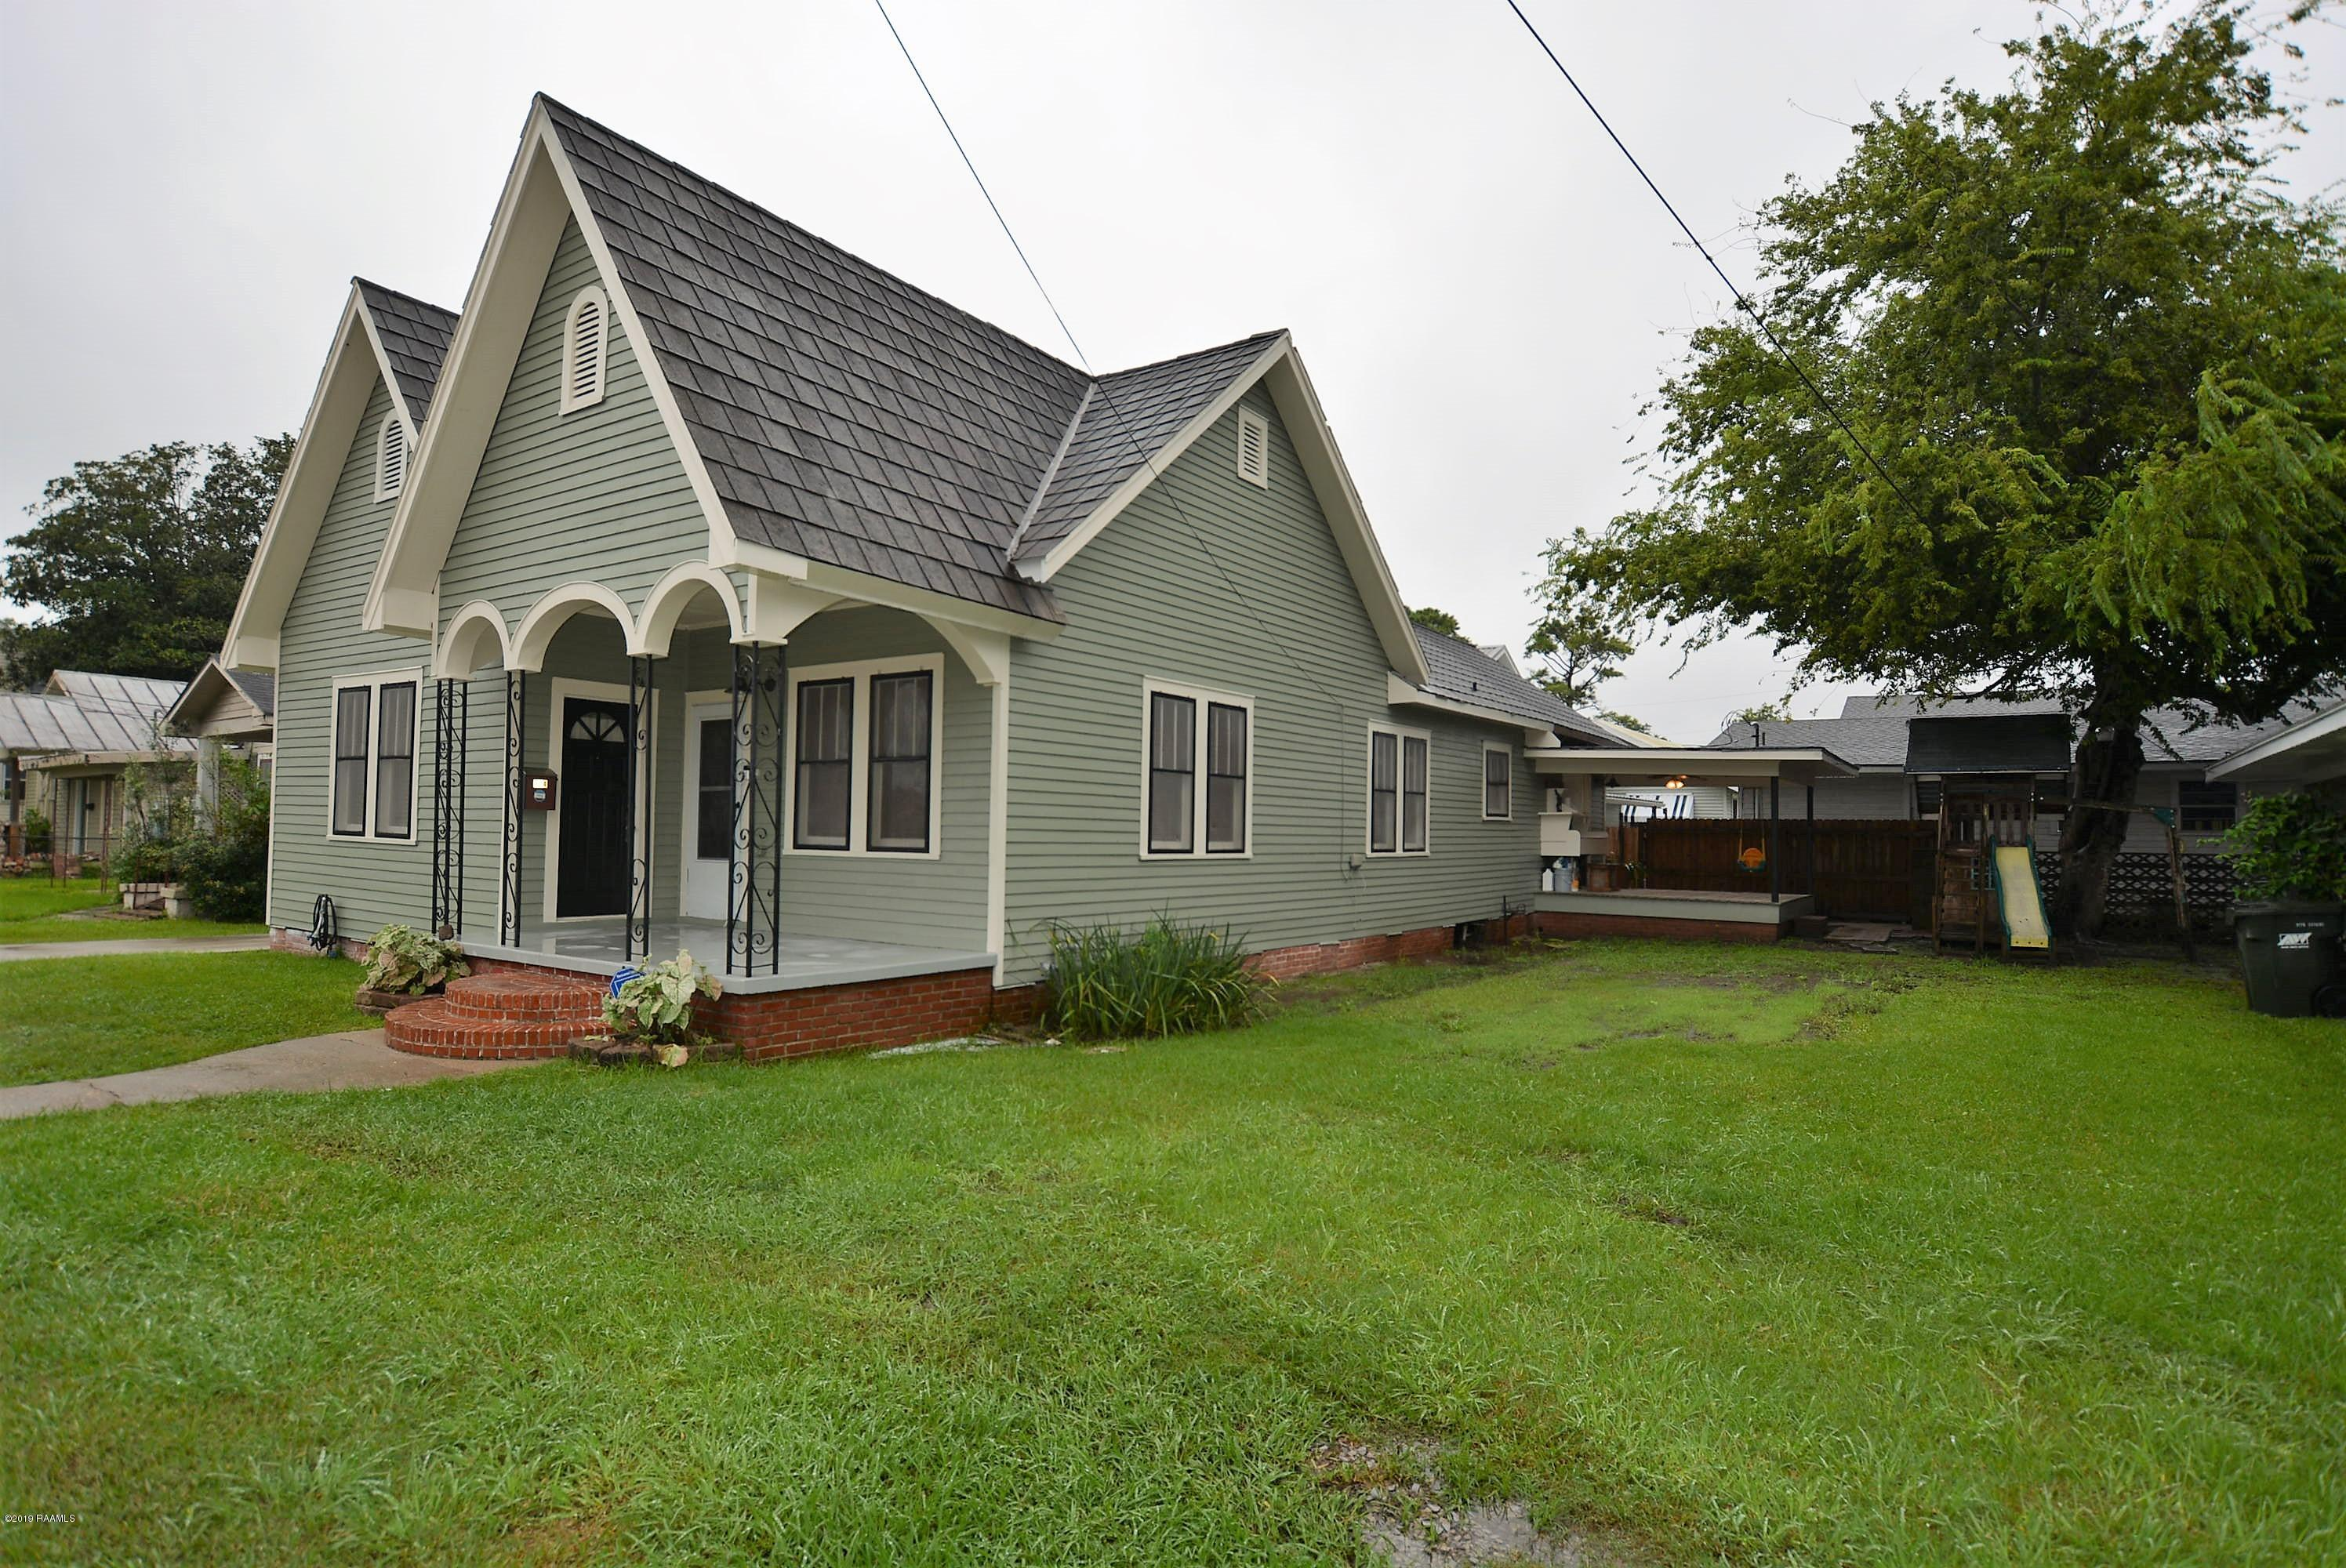 124 Washington Street E, New Iberia, LA 70560 Photo #4